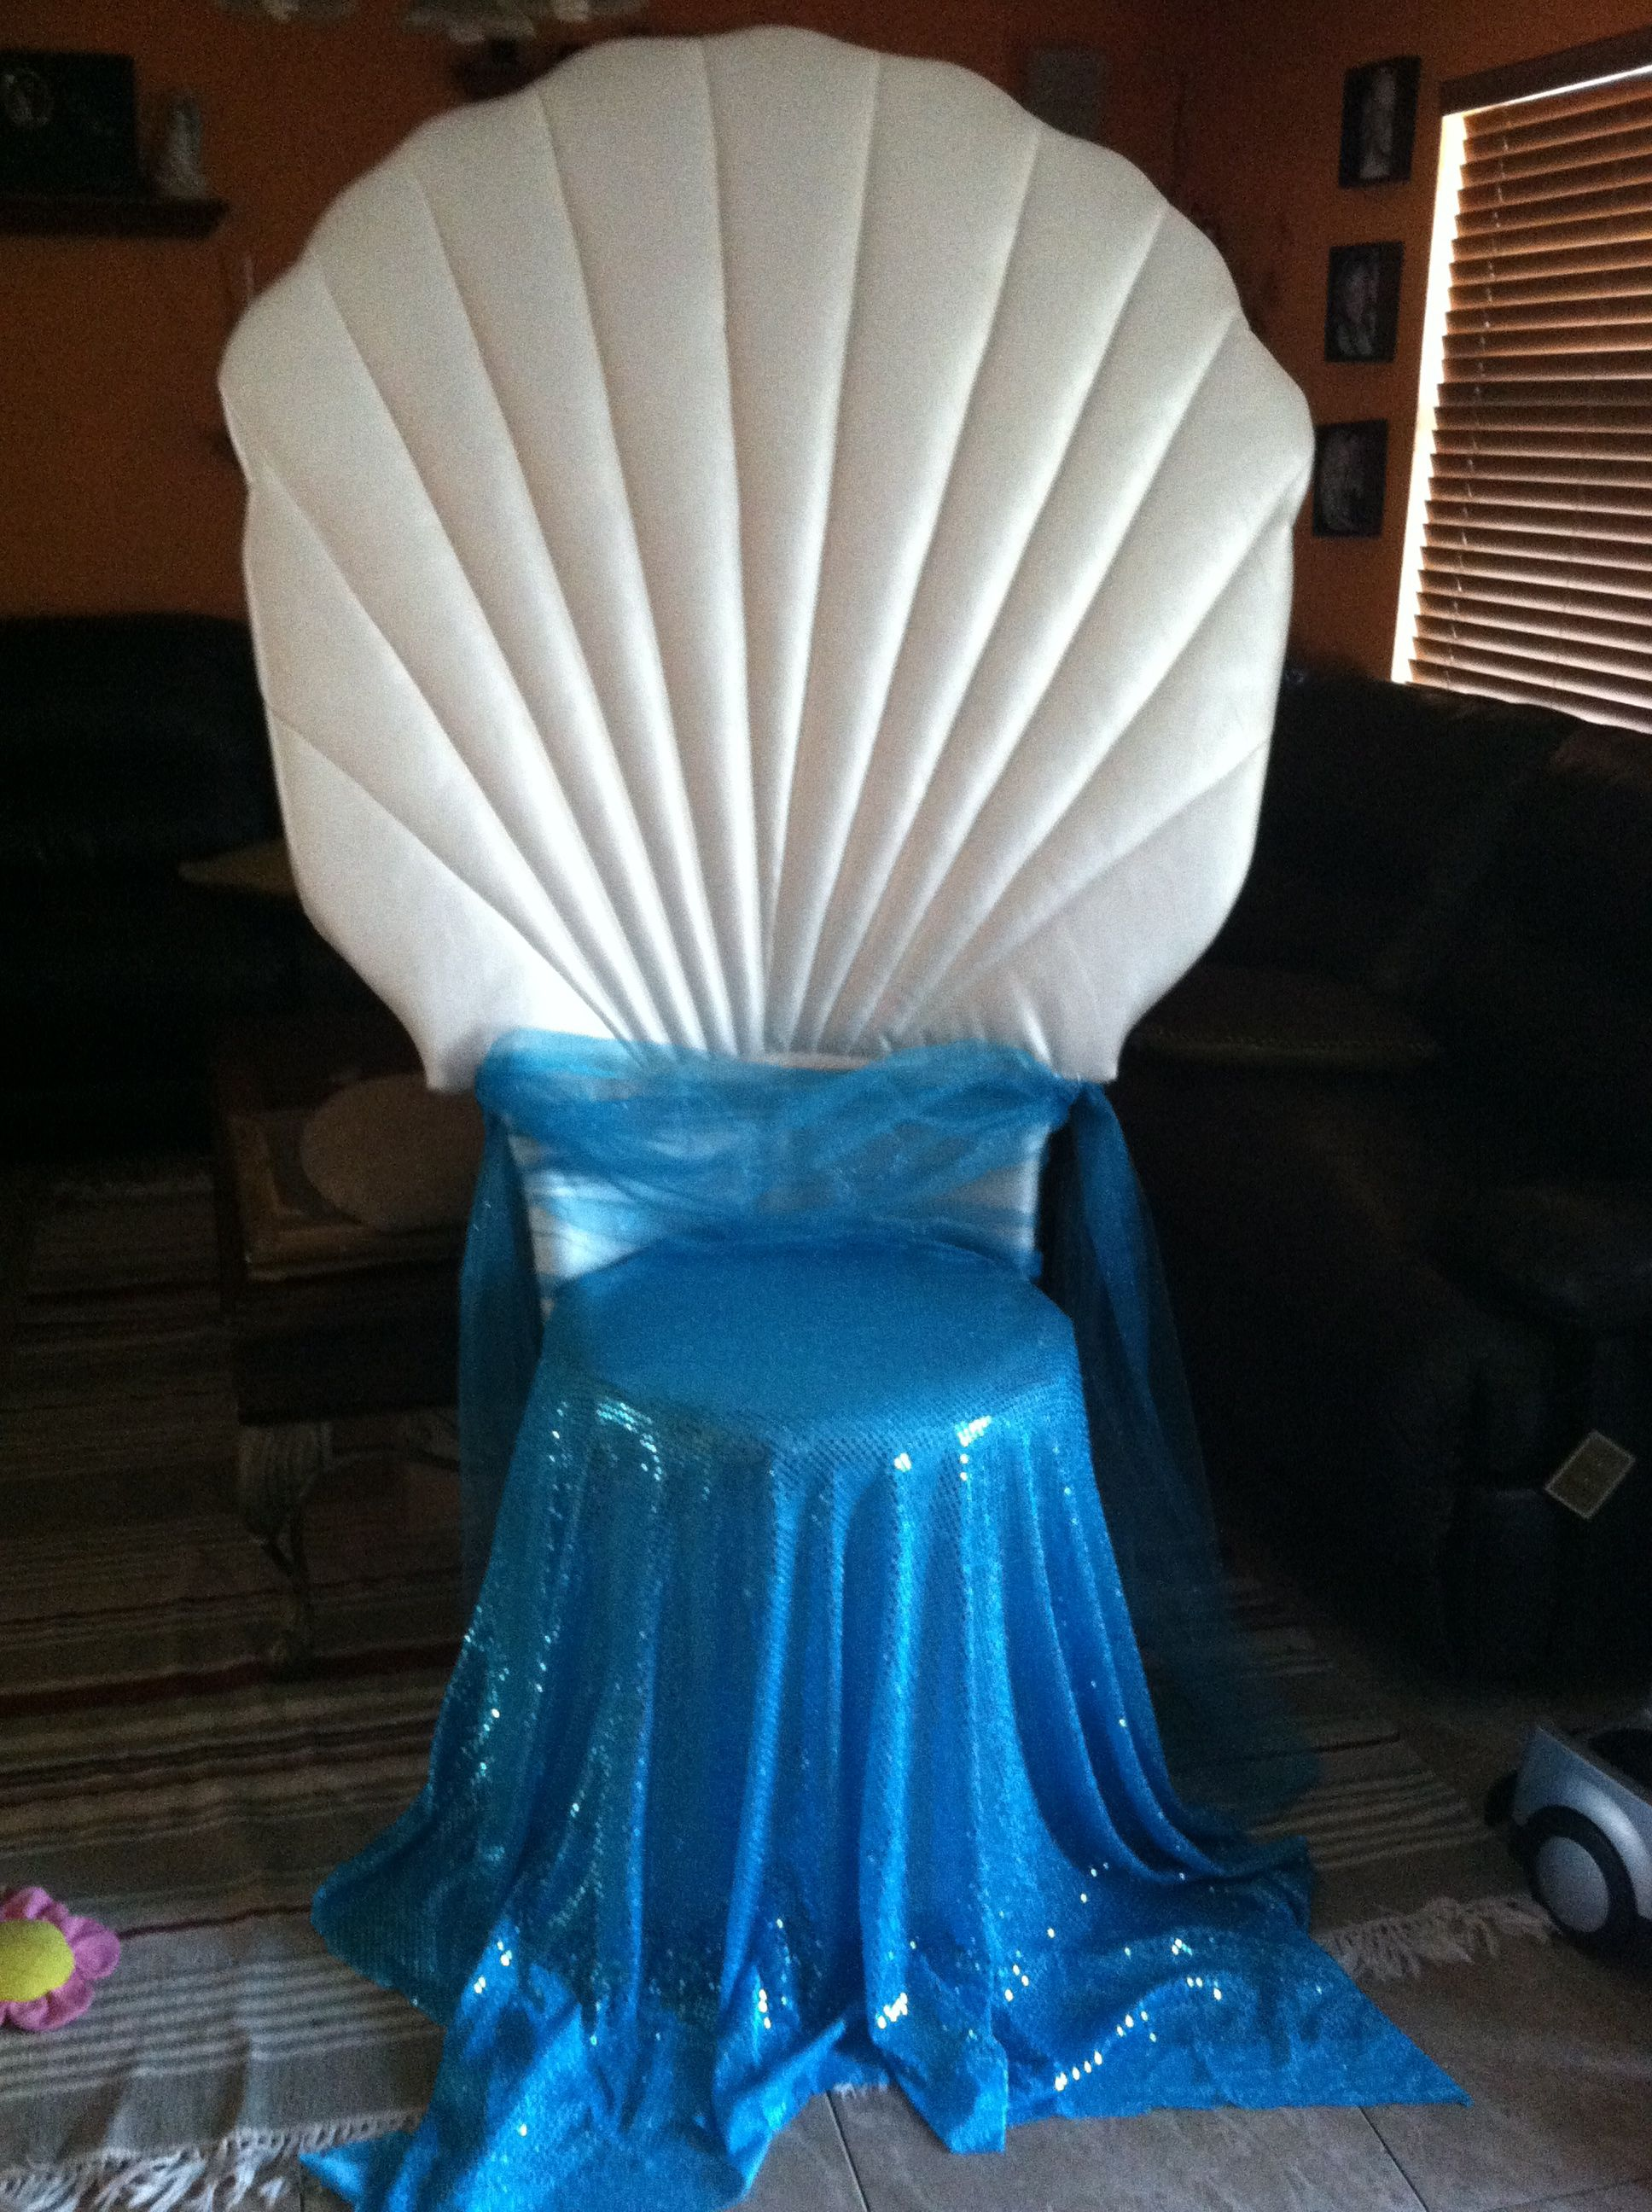 Shower Chairs Adelaide Clam Chair Available For Local Rental Under The Sea Quince